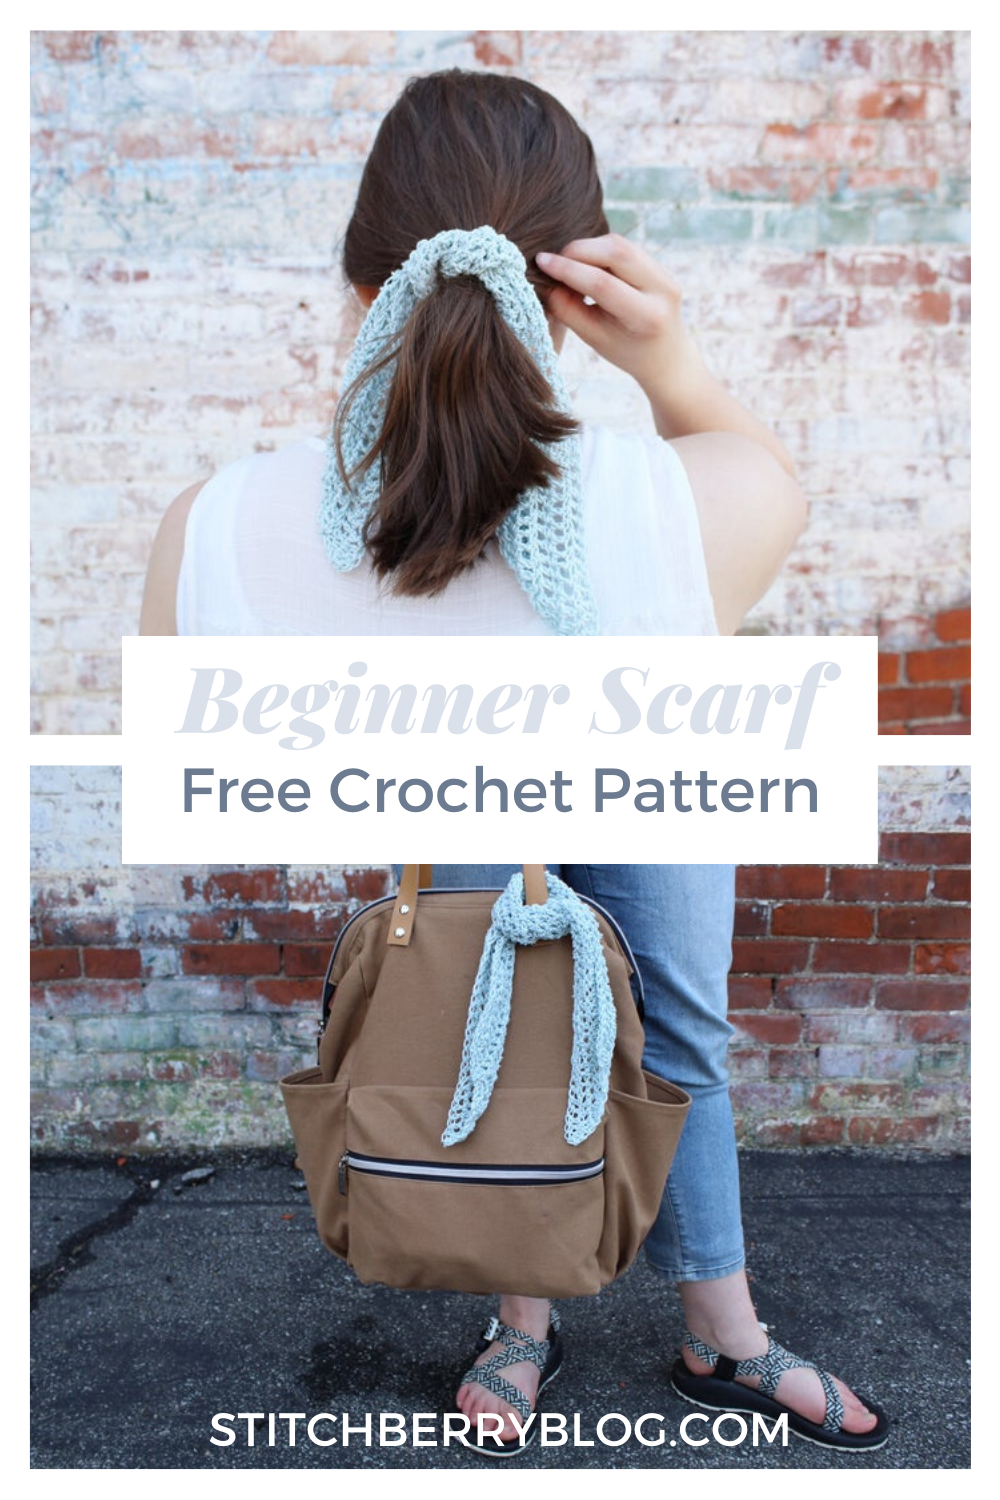 The May Scarf – Free Crochet Pattern